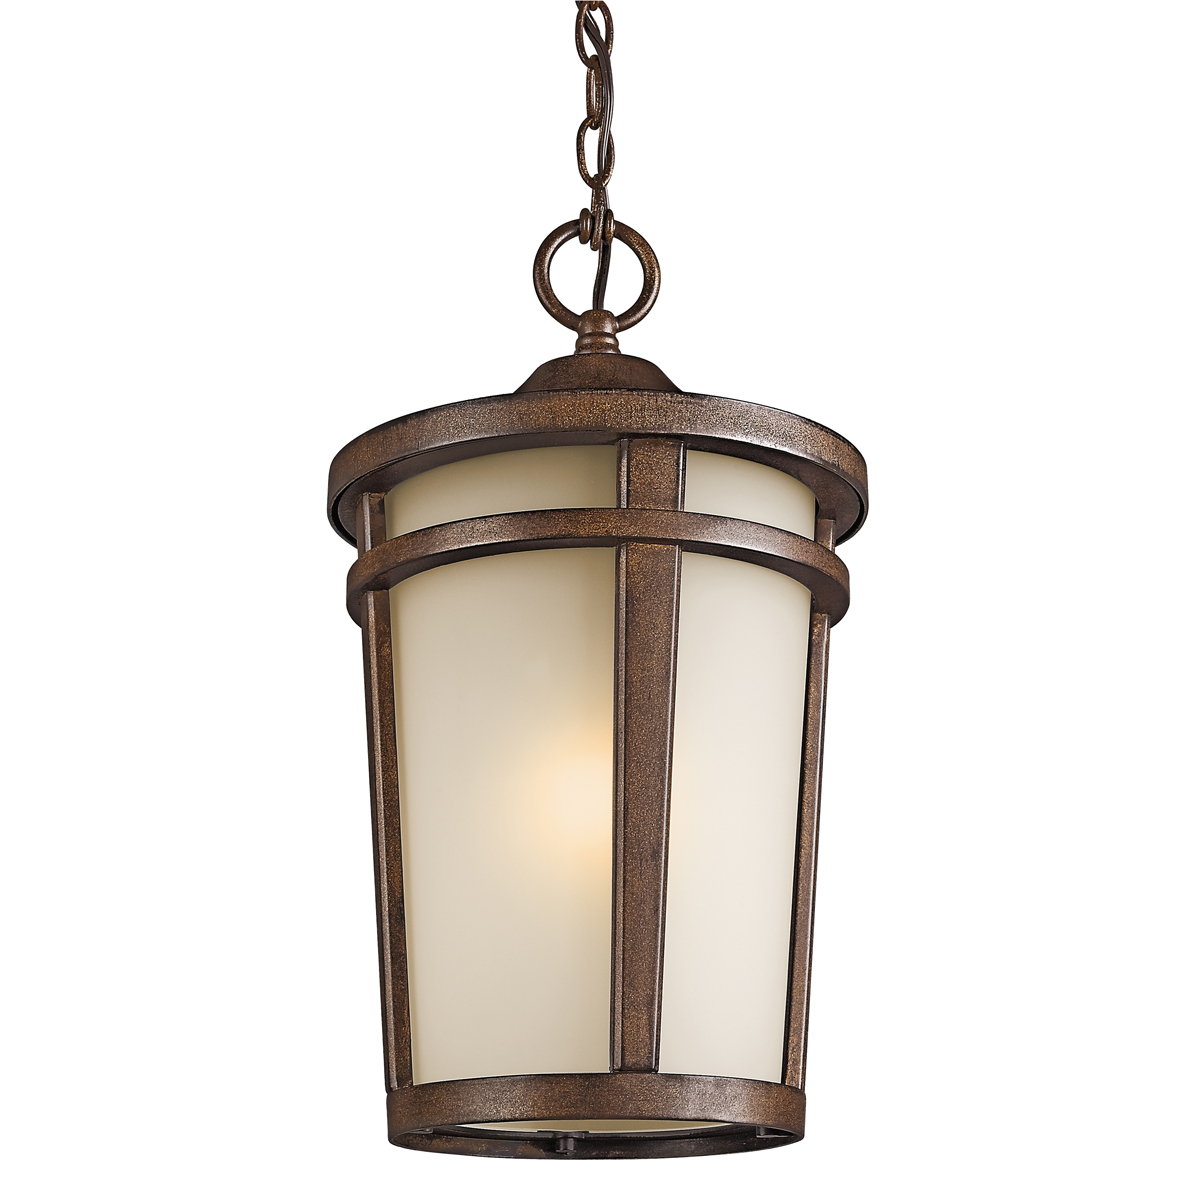 Kichler Lighting  49075BSTFL  Atwood 1 Light Outdoor Hanging Pendant in  Brown StoneKichler Lighting Outdoor Hanging Lights. Kichler Lighting Outdoor Sconce. Home Design Ideas